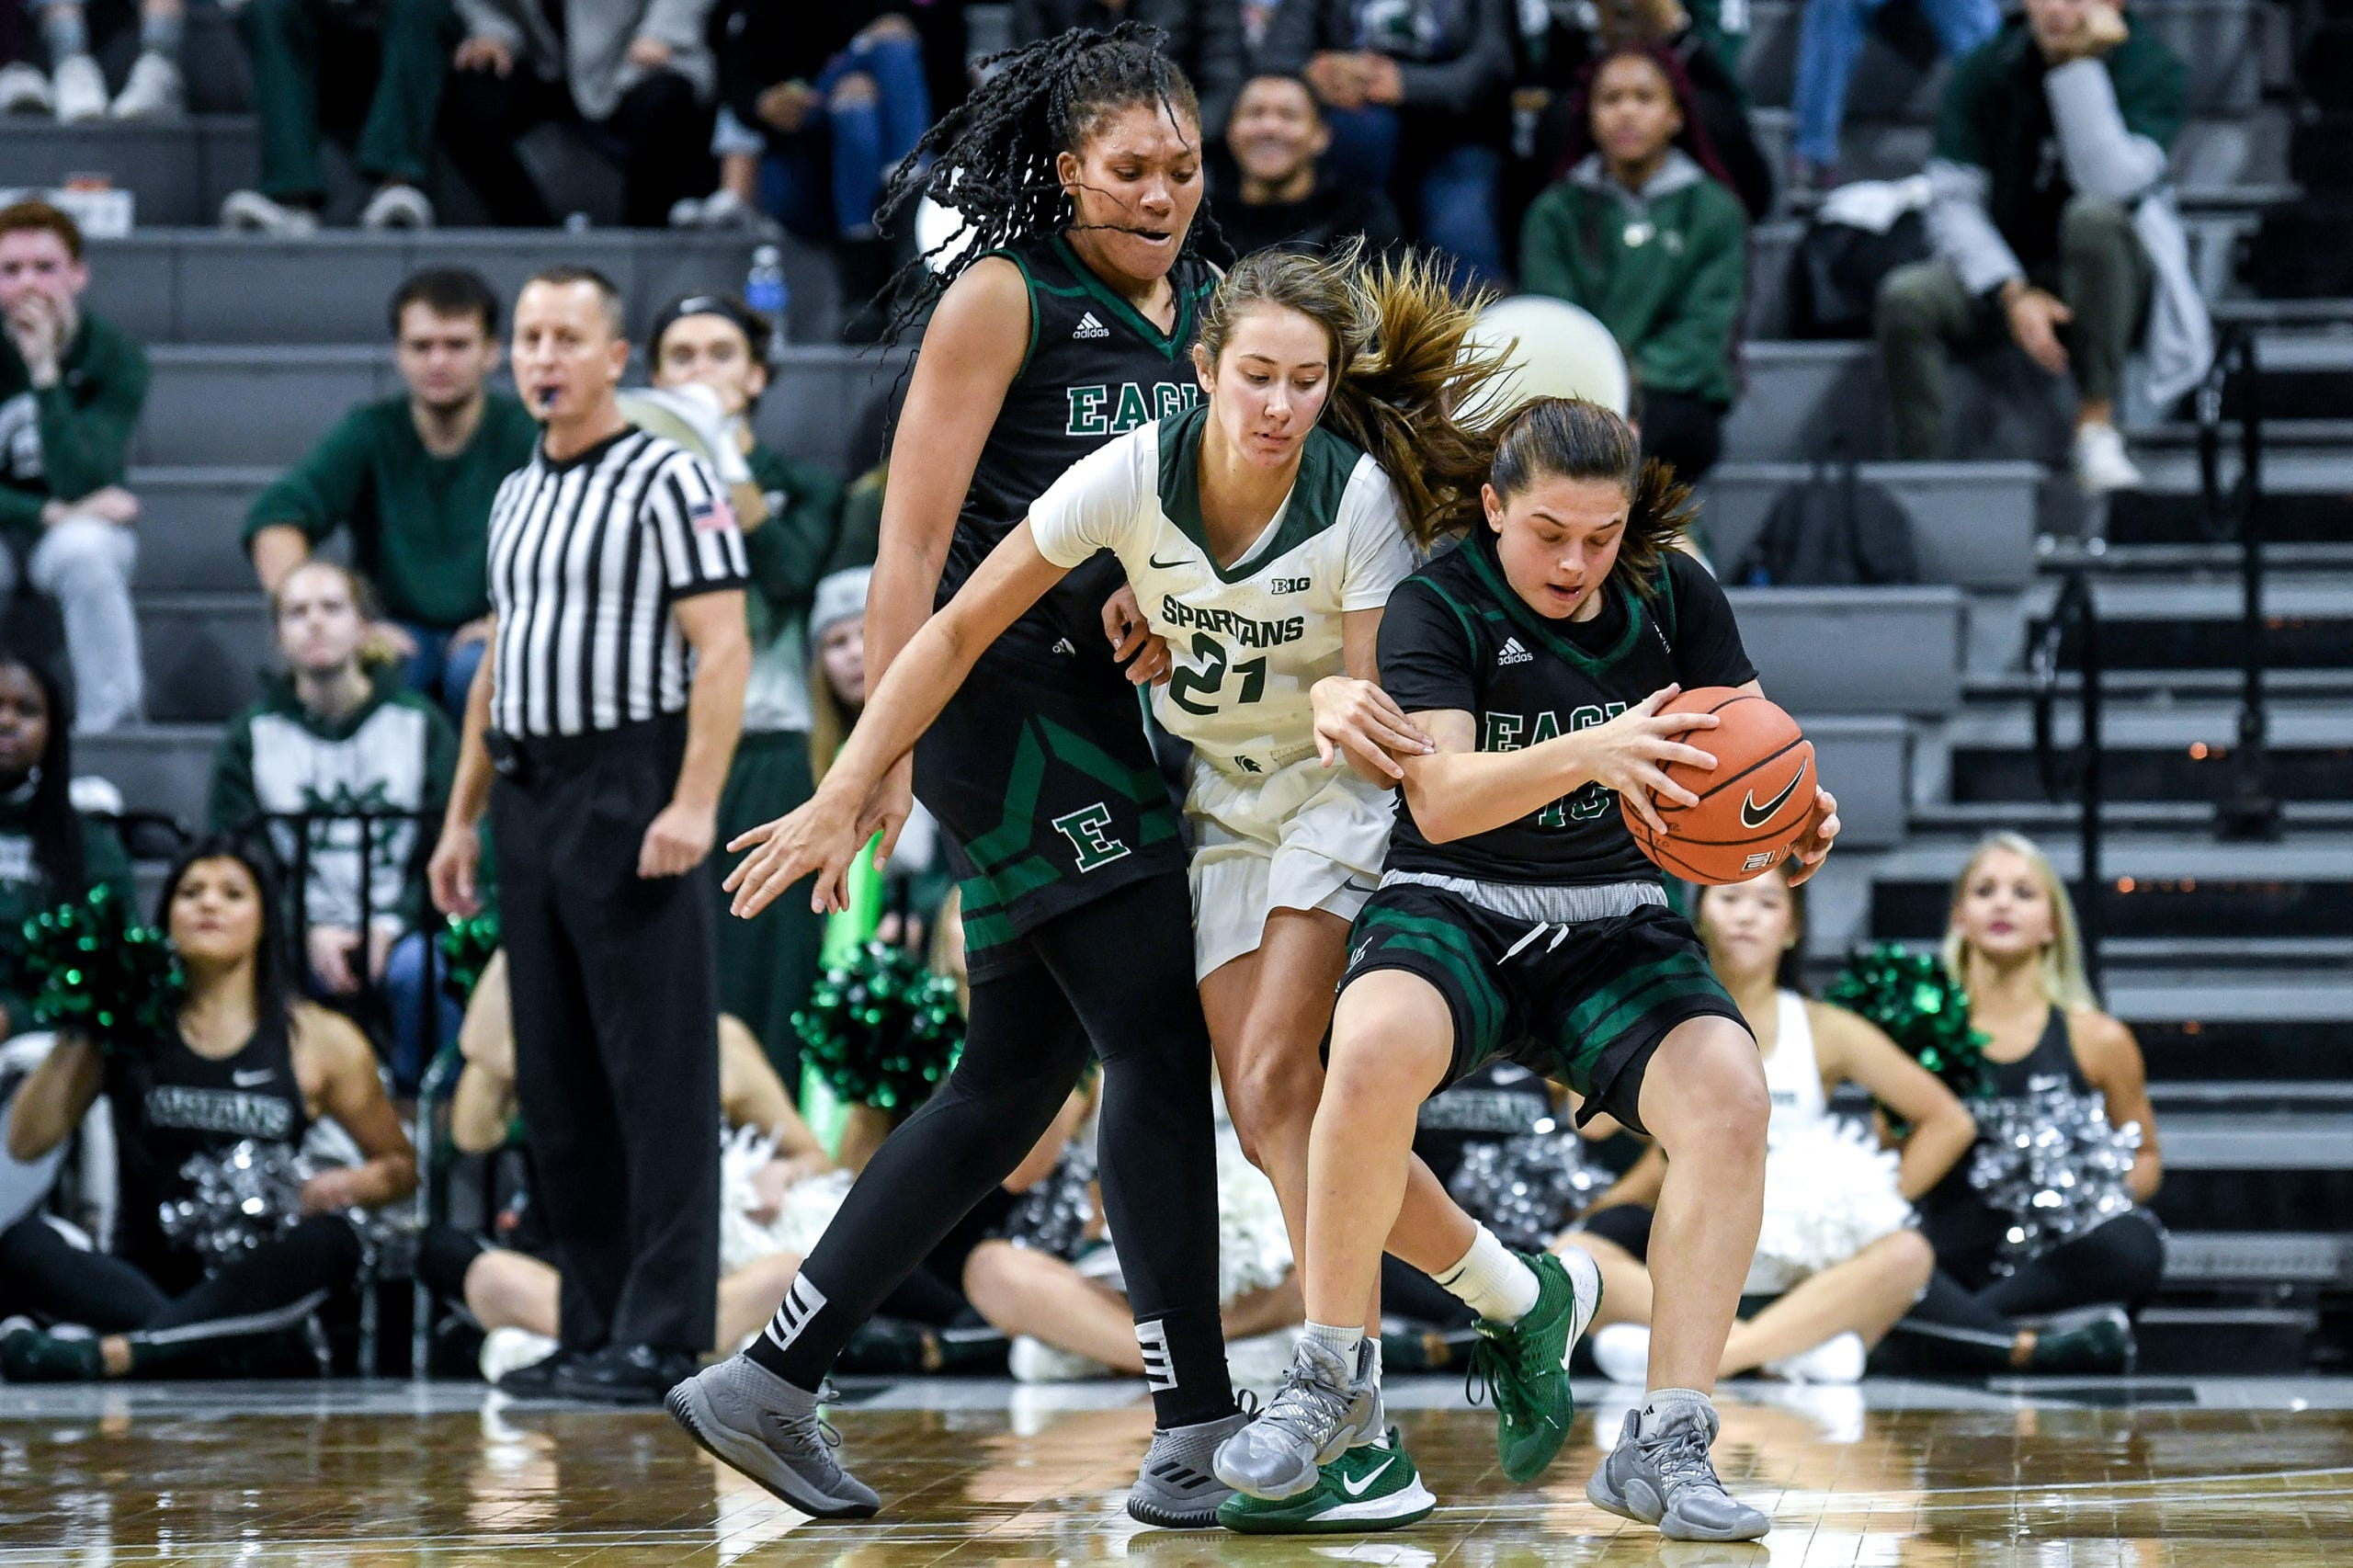 Michigan State's Laurel Jacqmain, center, pressures Eastern Michigan's Jenna Annecchiarico, right, during the  fourth quarter on Tuesday, Nov. 5, 2019, at the Breslin Center in East Lansing.